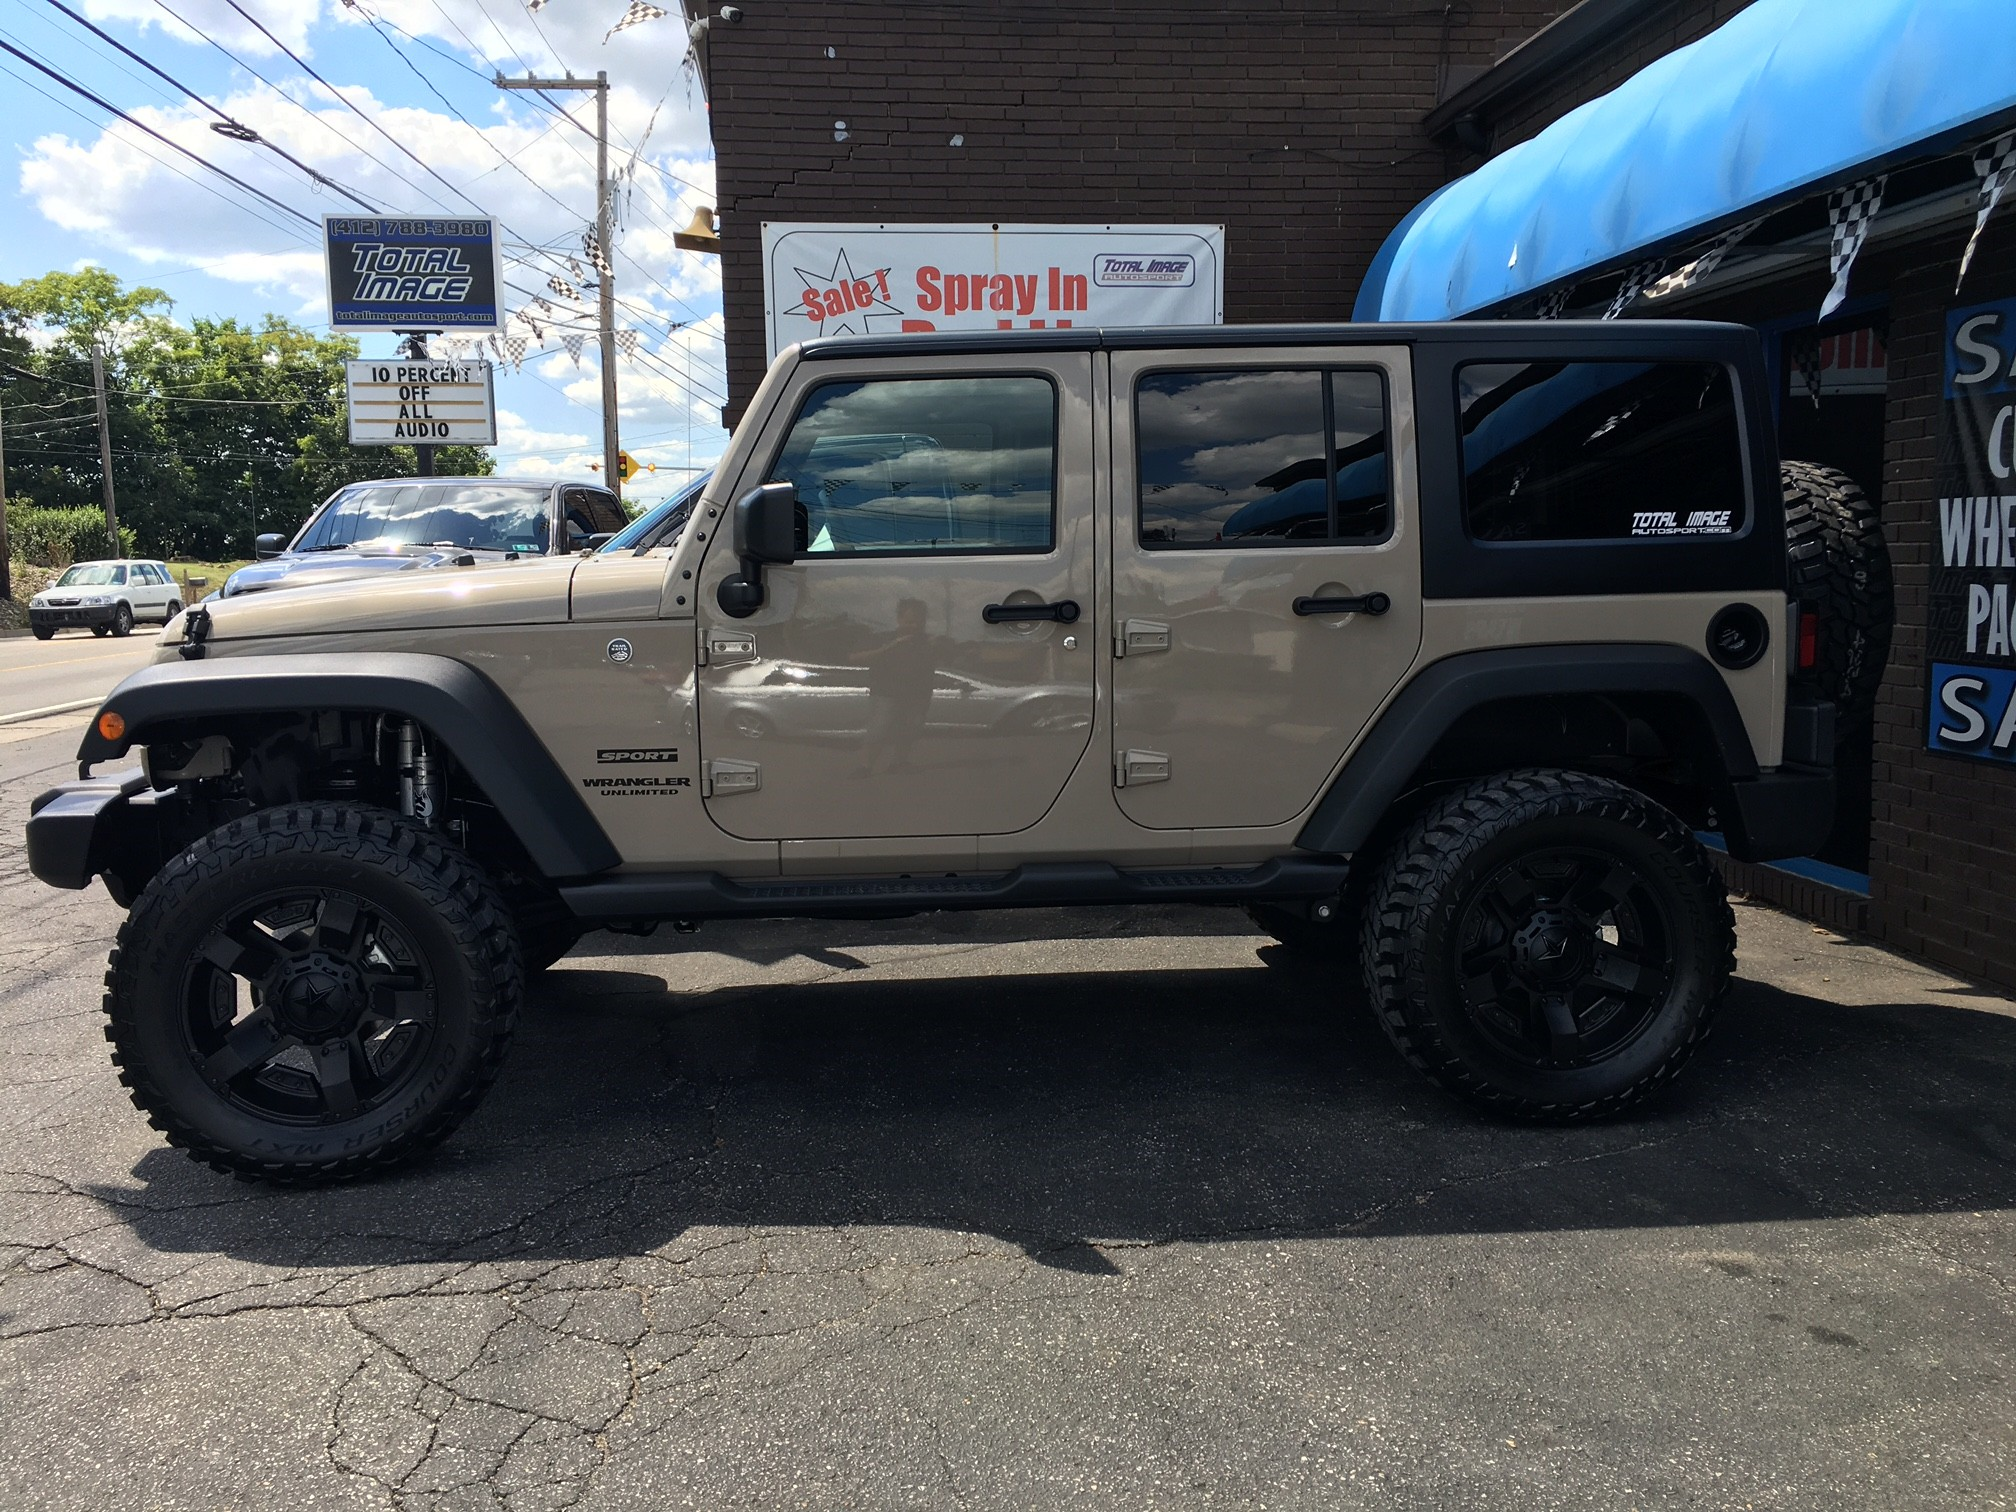 Marvelous 2016 Jeep Wrangler With A 4 Inch Lift And 20x9 KMC XD Rockstar II Wheels  And 35 Inch Mastercrsft MXT Tires ...